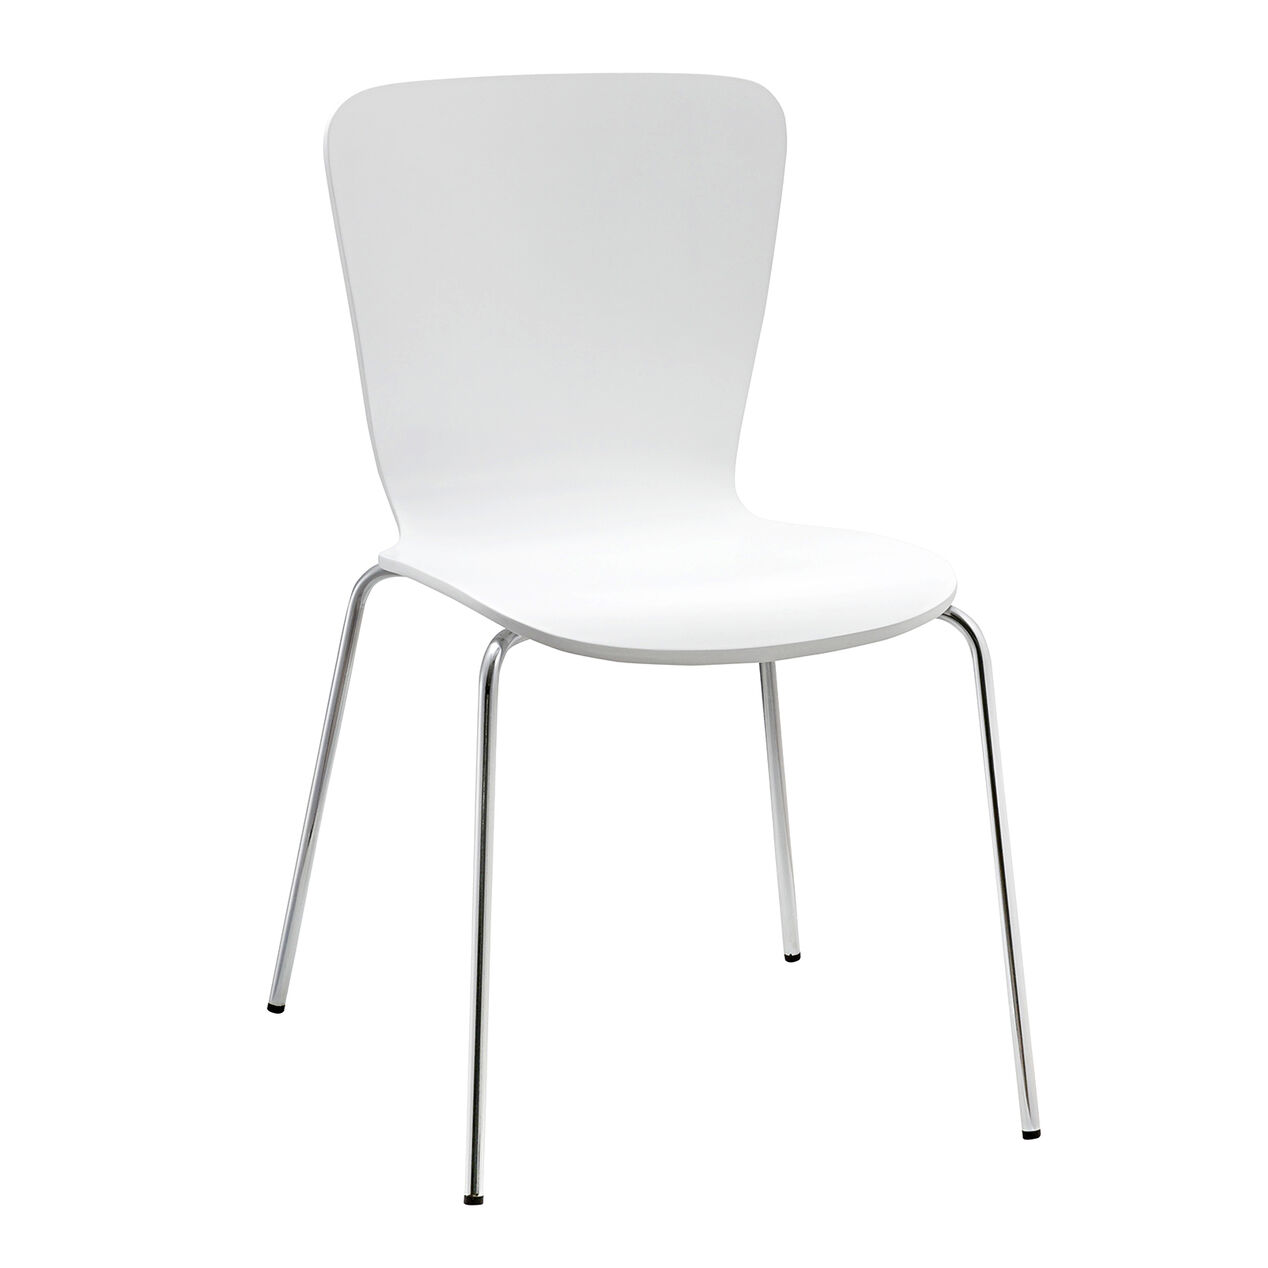 Bentwood chairs white - Bentwood White Dining Chair